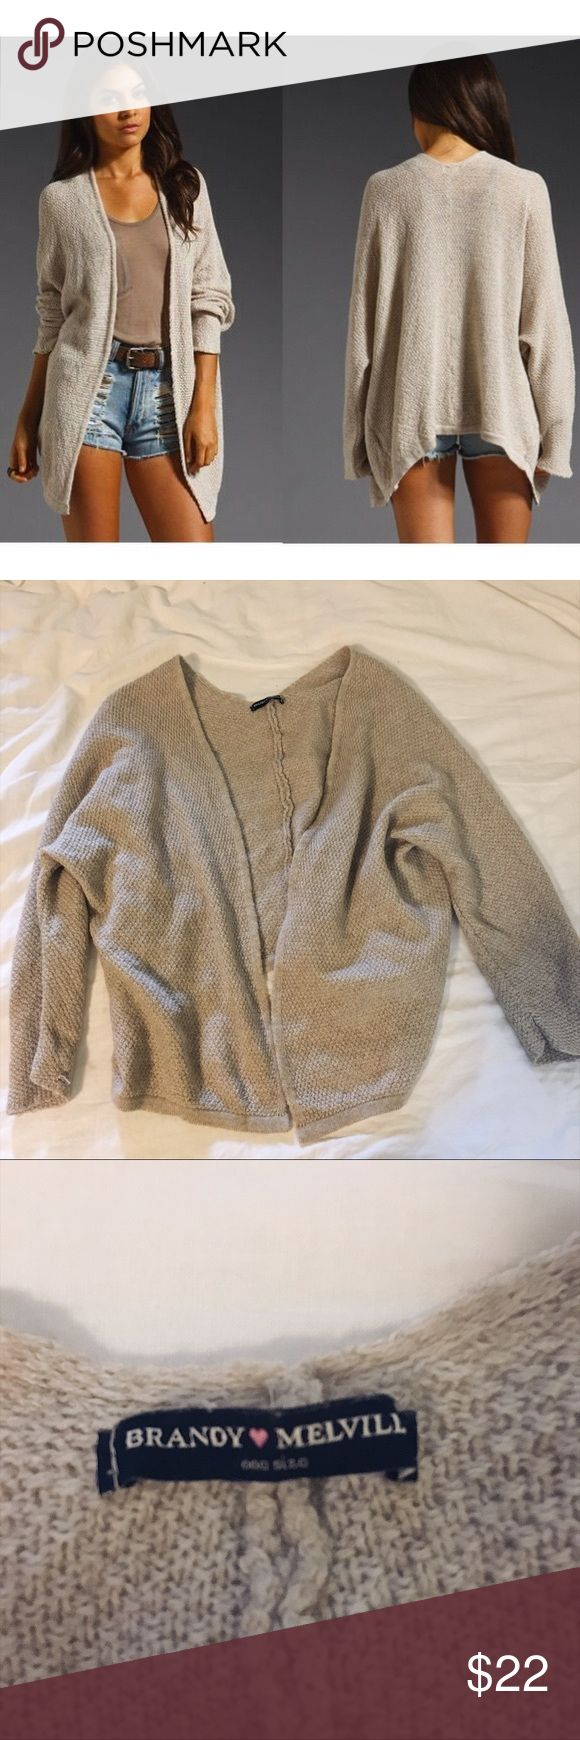 Knit cardigan in oatmeal Brandy Melville one size cardigan. No rips, tears or flaws. Only worn once and washed. Excellent condition. Brandy Melville Sweaters Cardigans